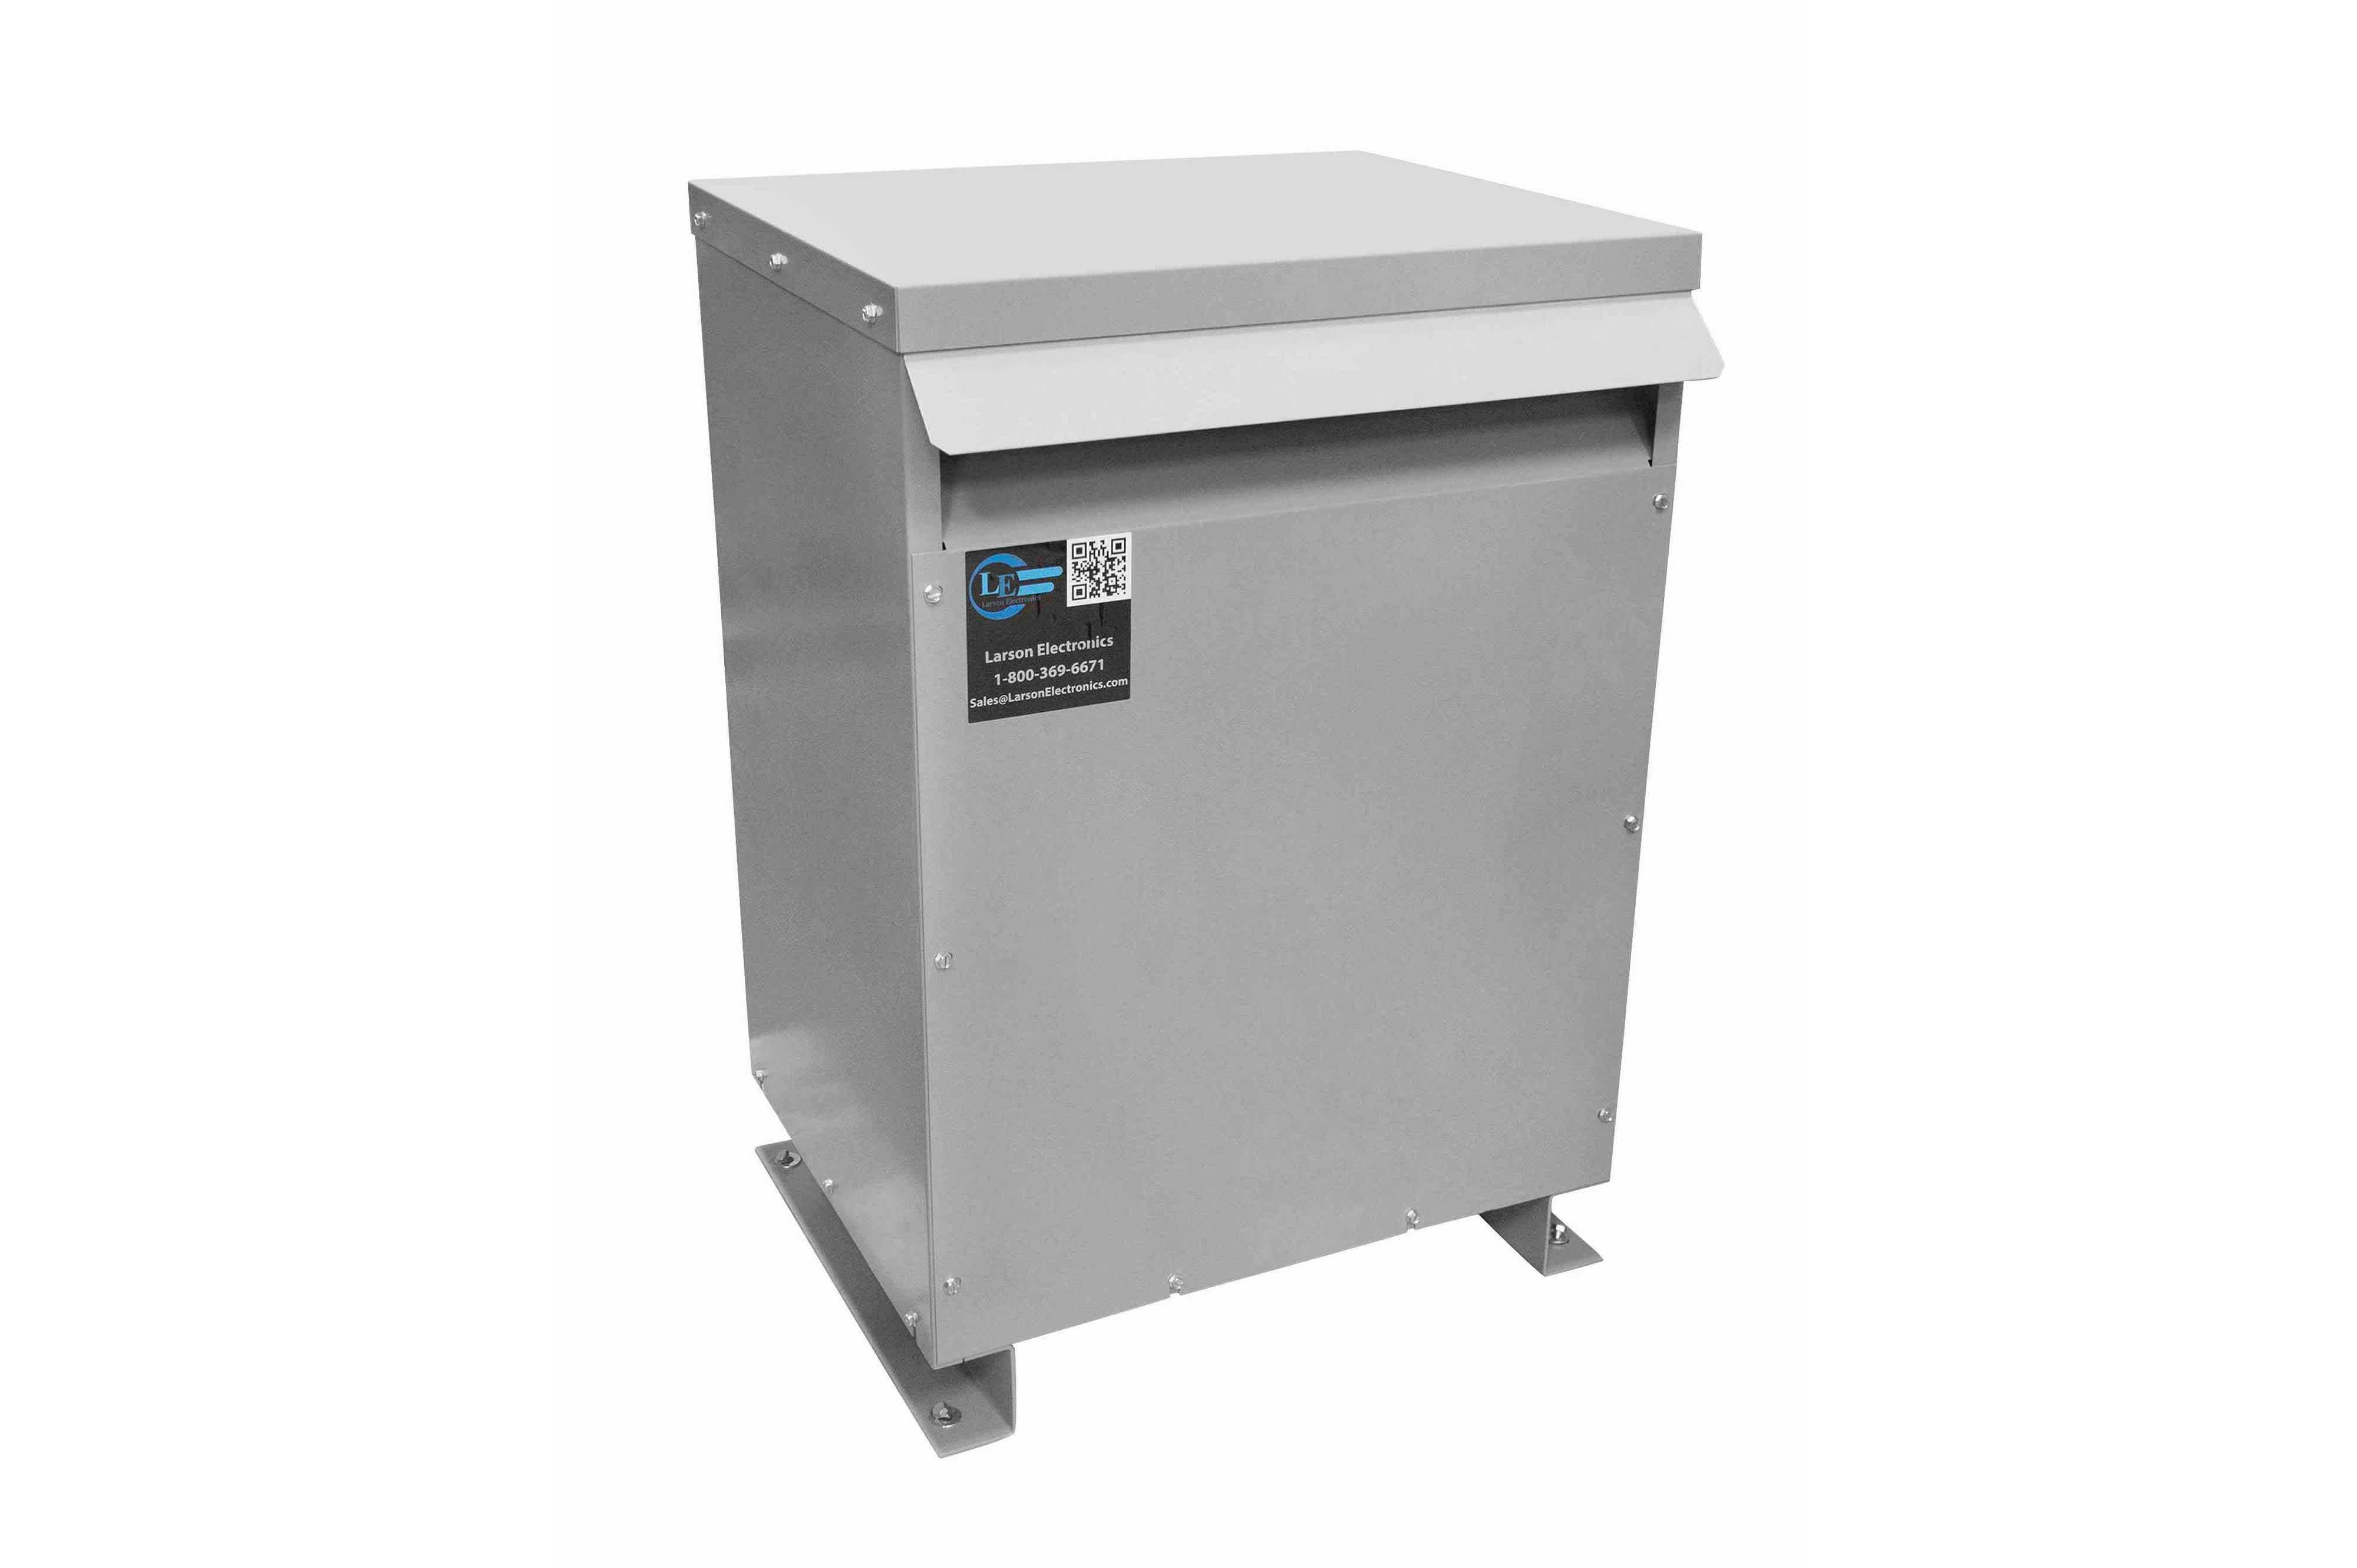 70 kVA 3PH Isolation Transformer, 380V Delta Primary, 208V Delta Secondary, N3R, Ventilated, 60 Hz